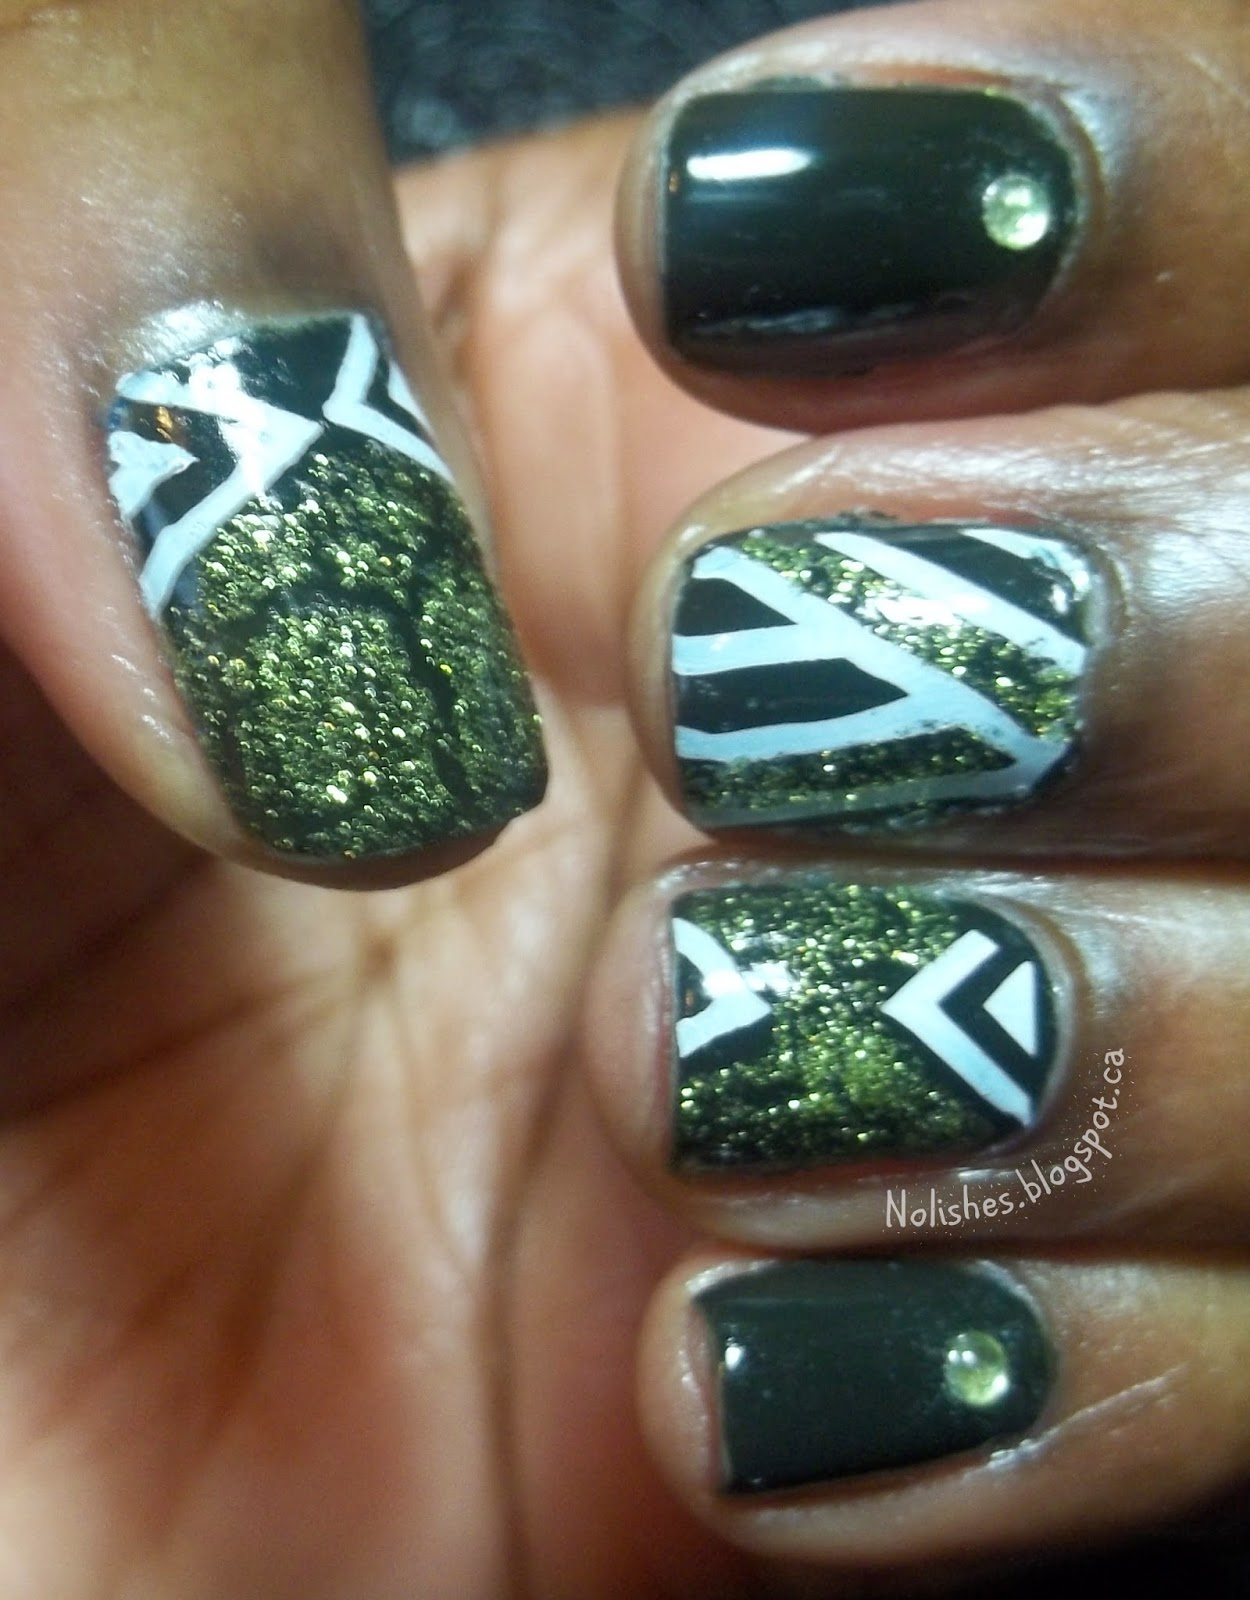 Nolishes: Crackle Polish Challenge #4: Dark Green and White ...